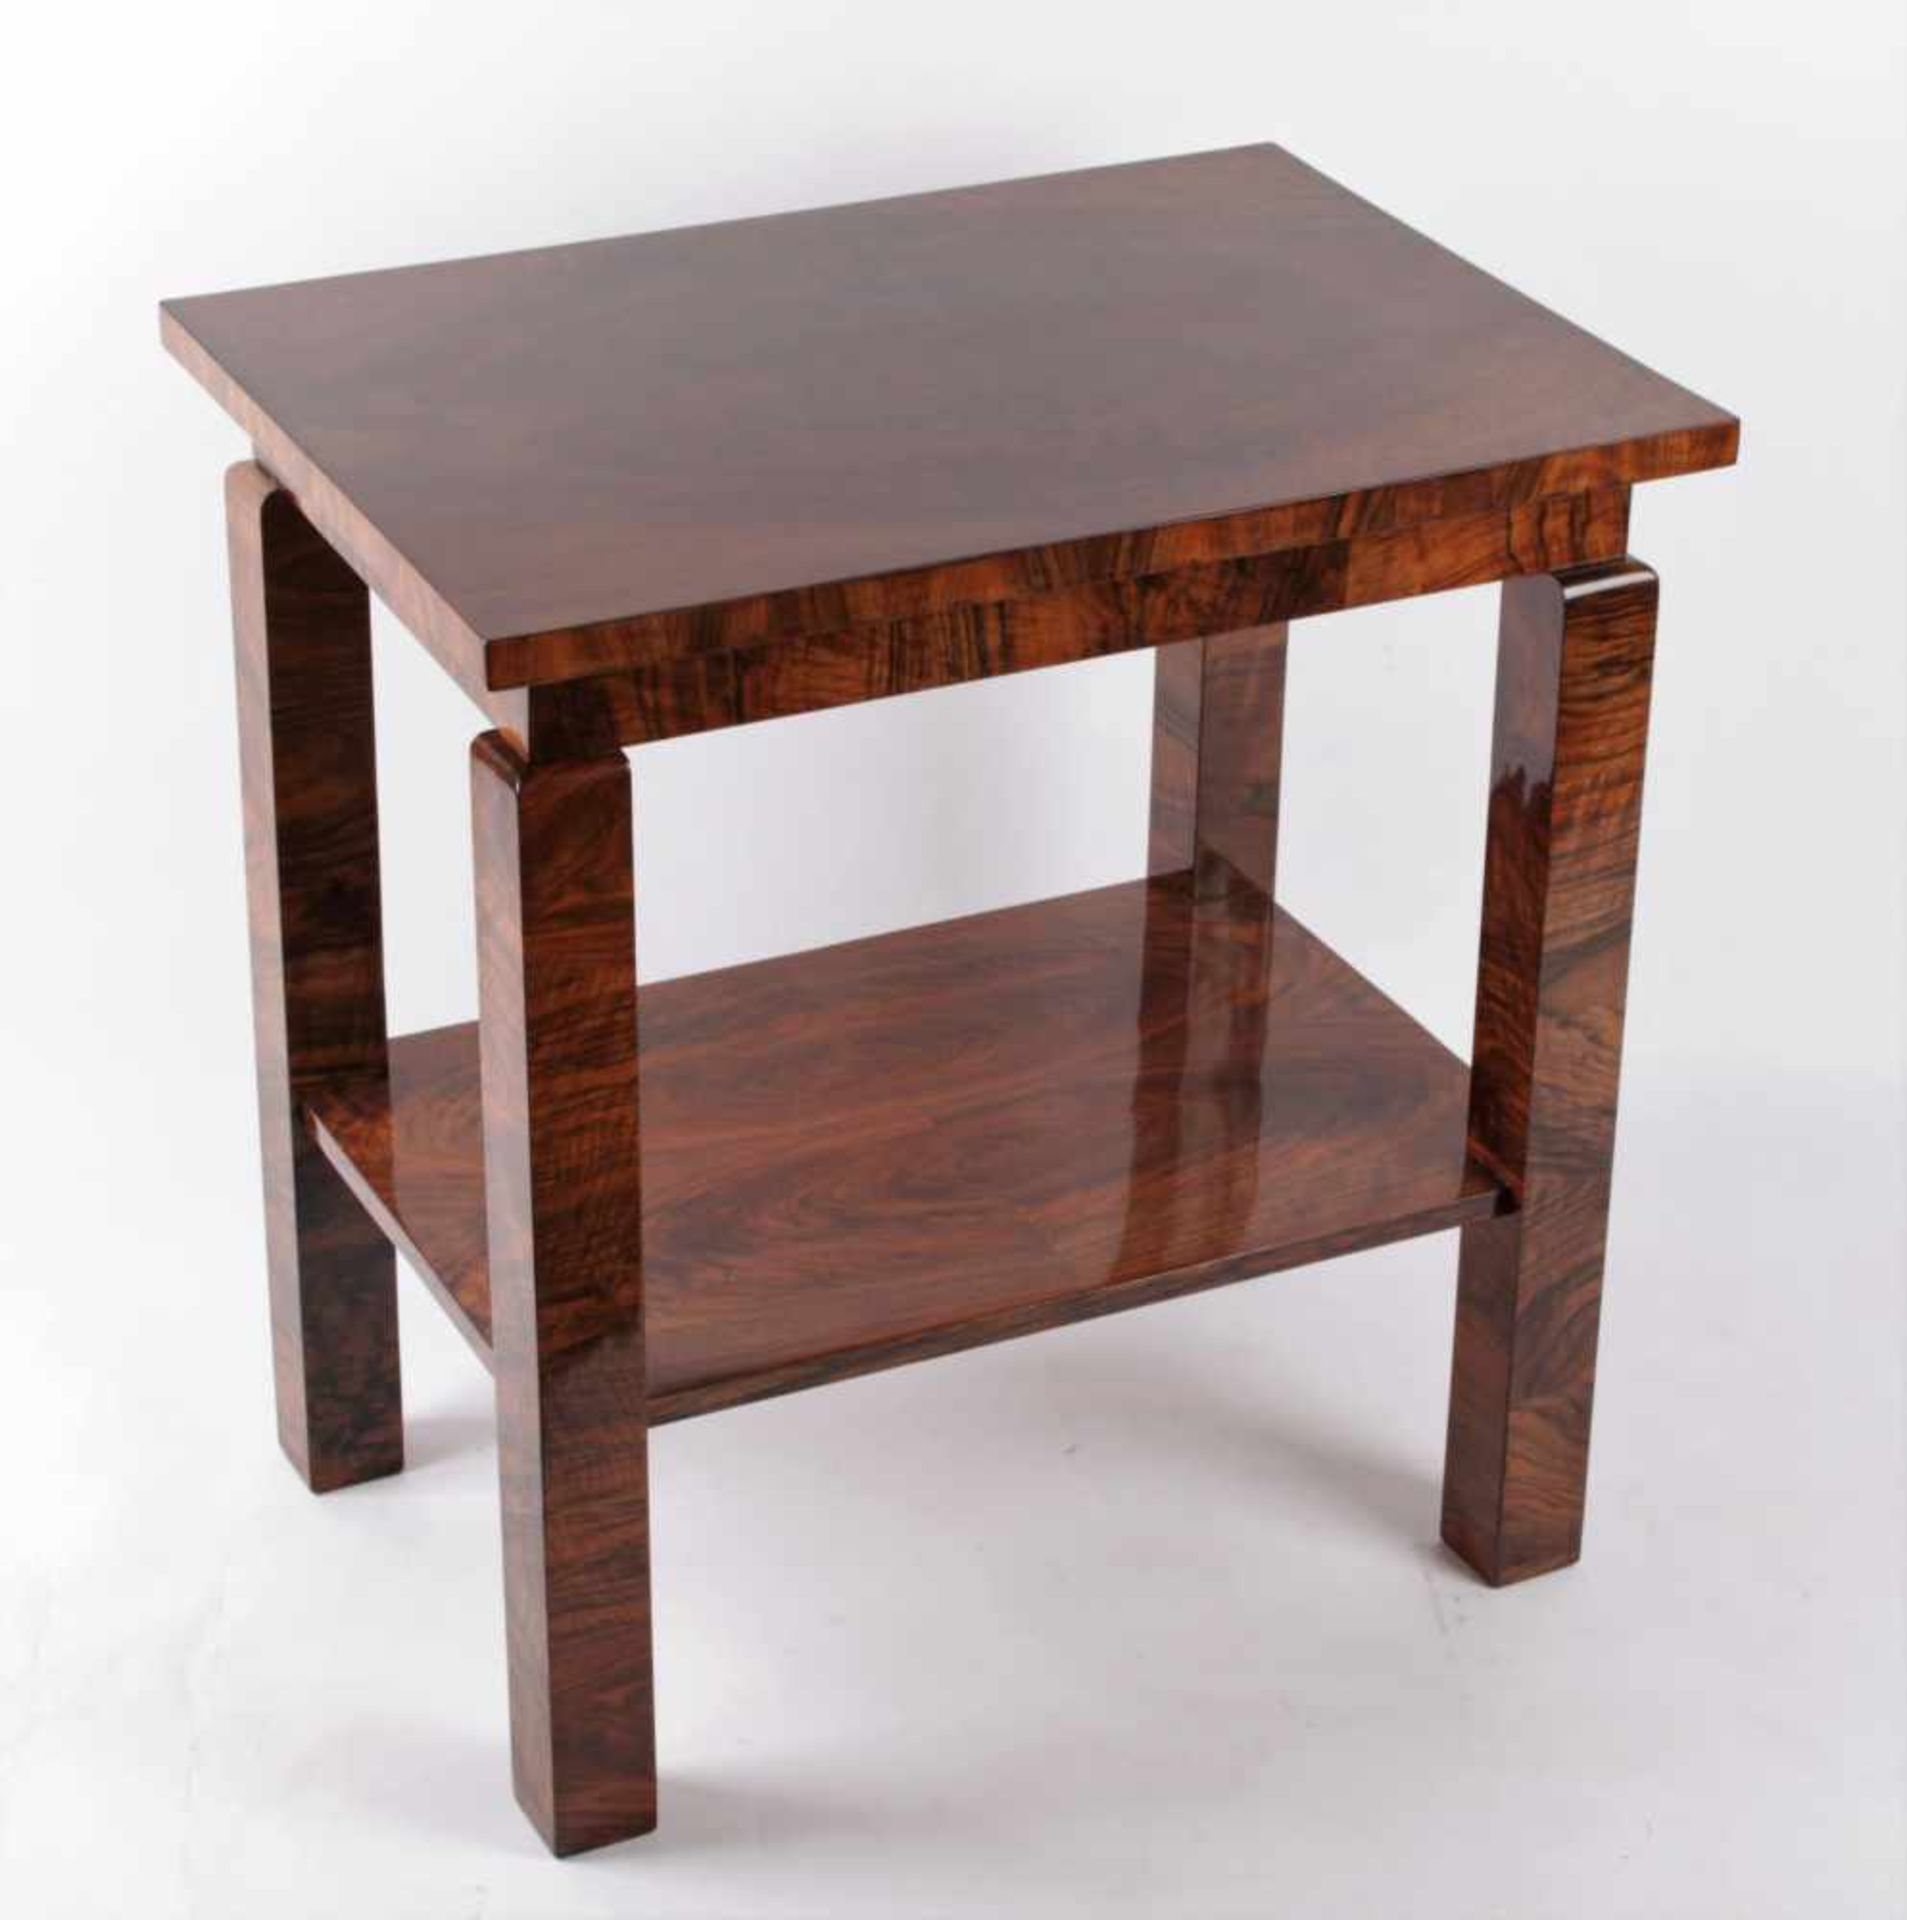 Los 35 - Art Deco table Bohemia, 20 - 30 years of the 20th century, table with squared legs, rectangle